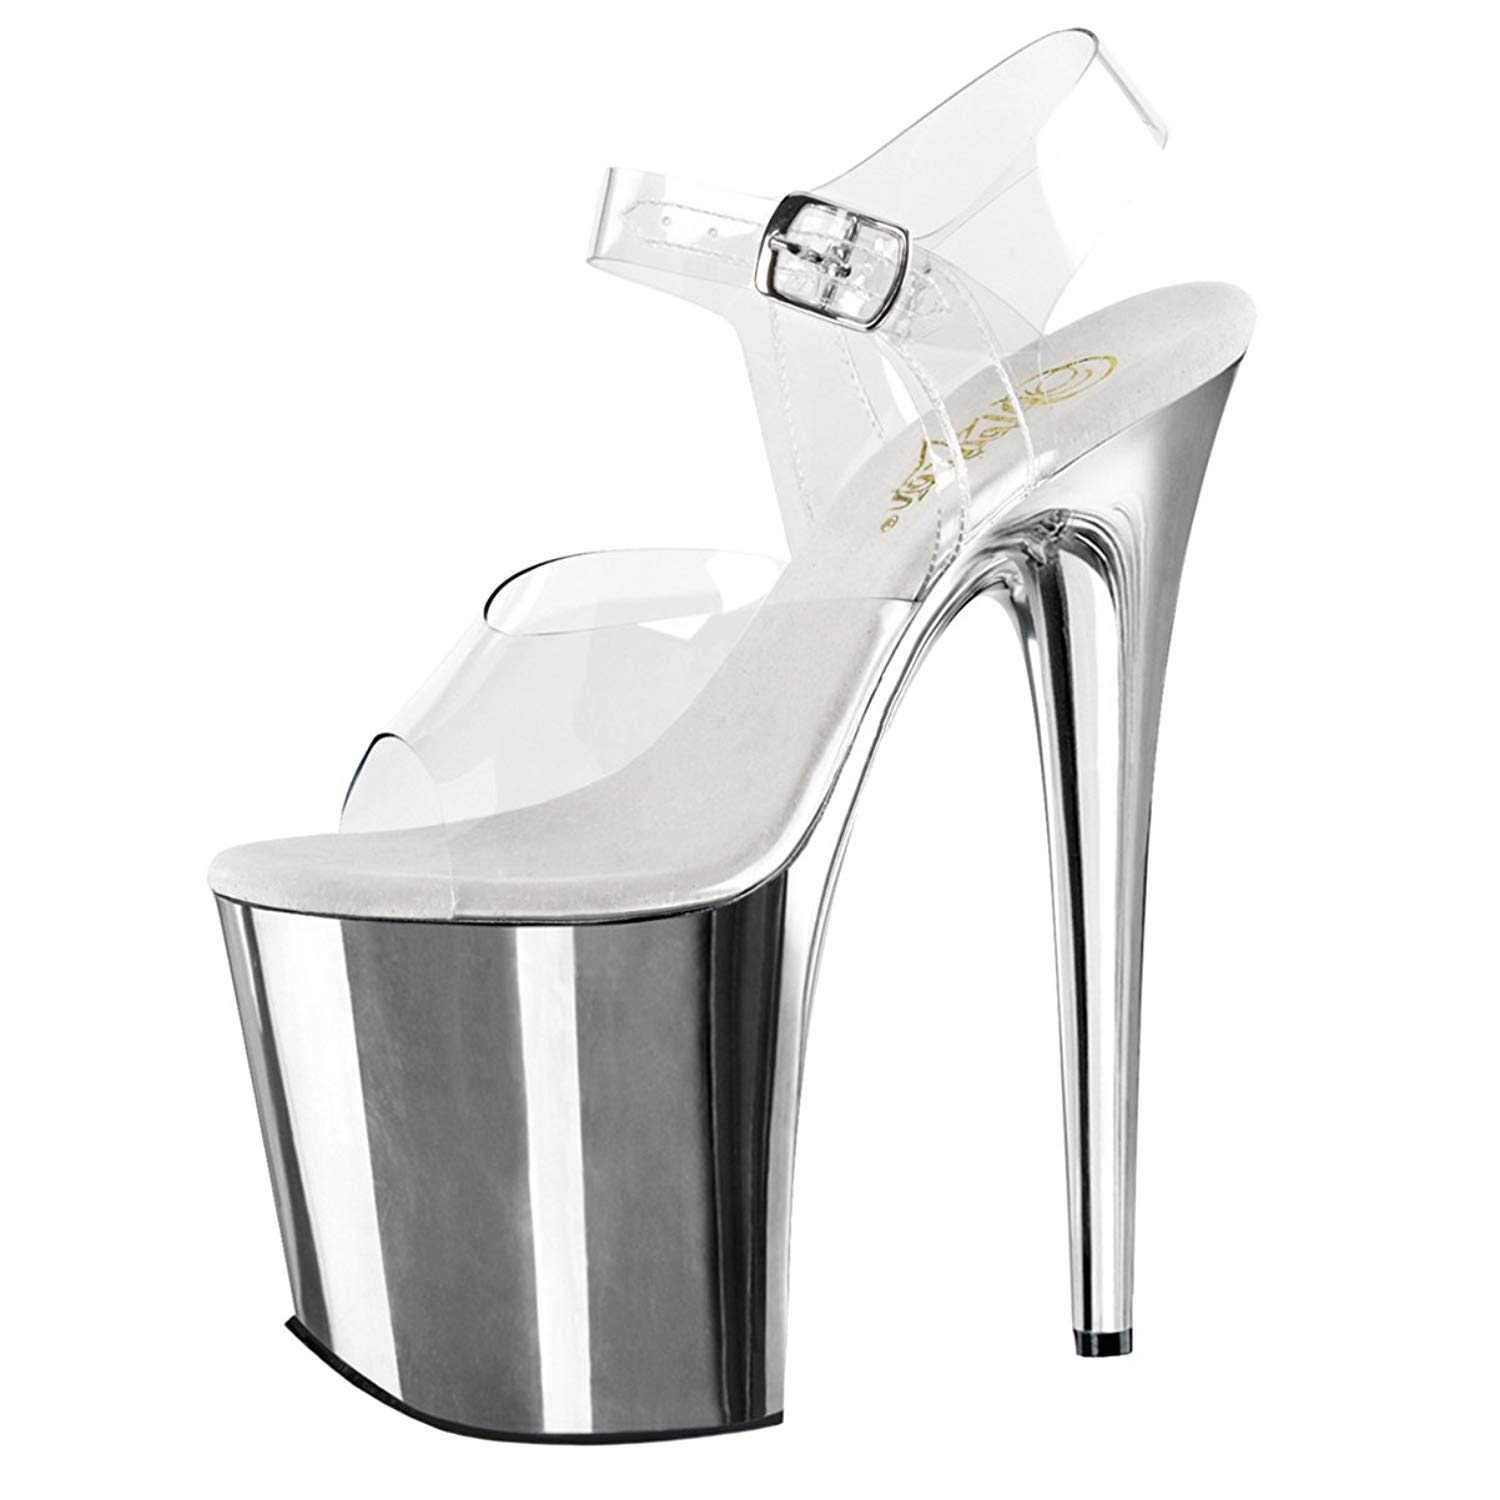 7f90e640f91 Get Quotations · Summitfashions Womens Silver High Heels Clear Ankle Strap Shoes  Platform Sandals 8 Inch Heels